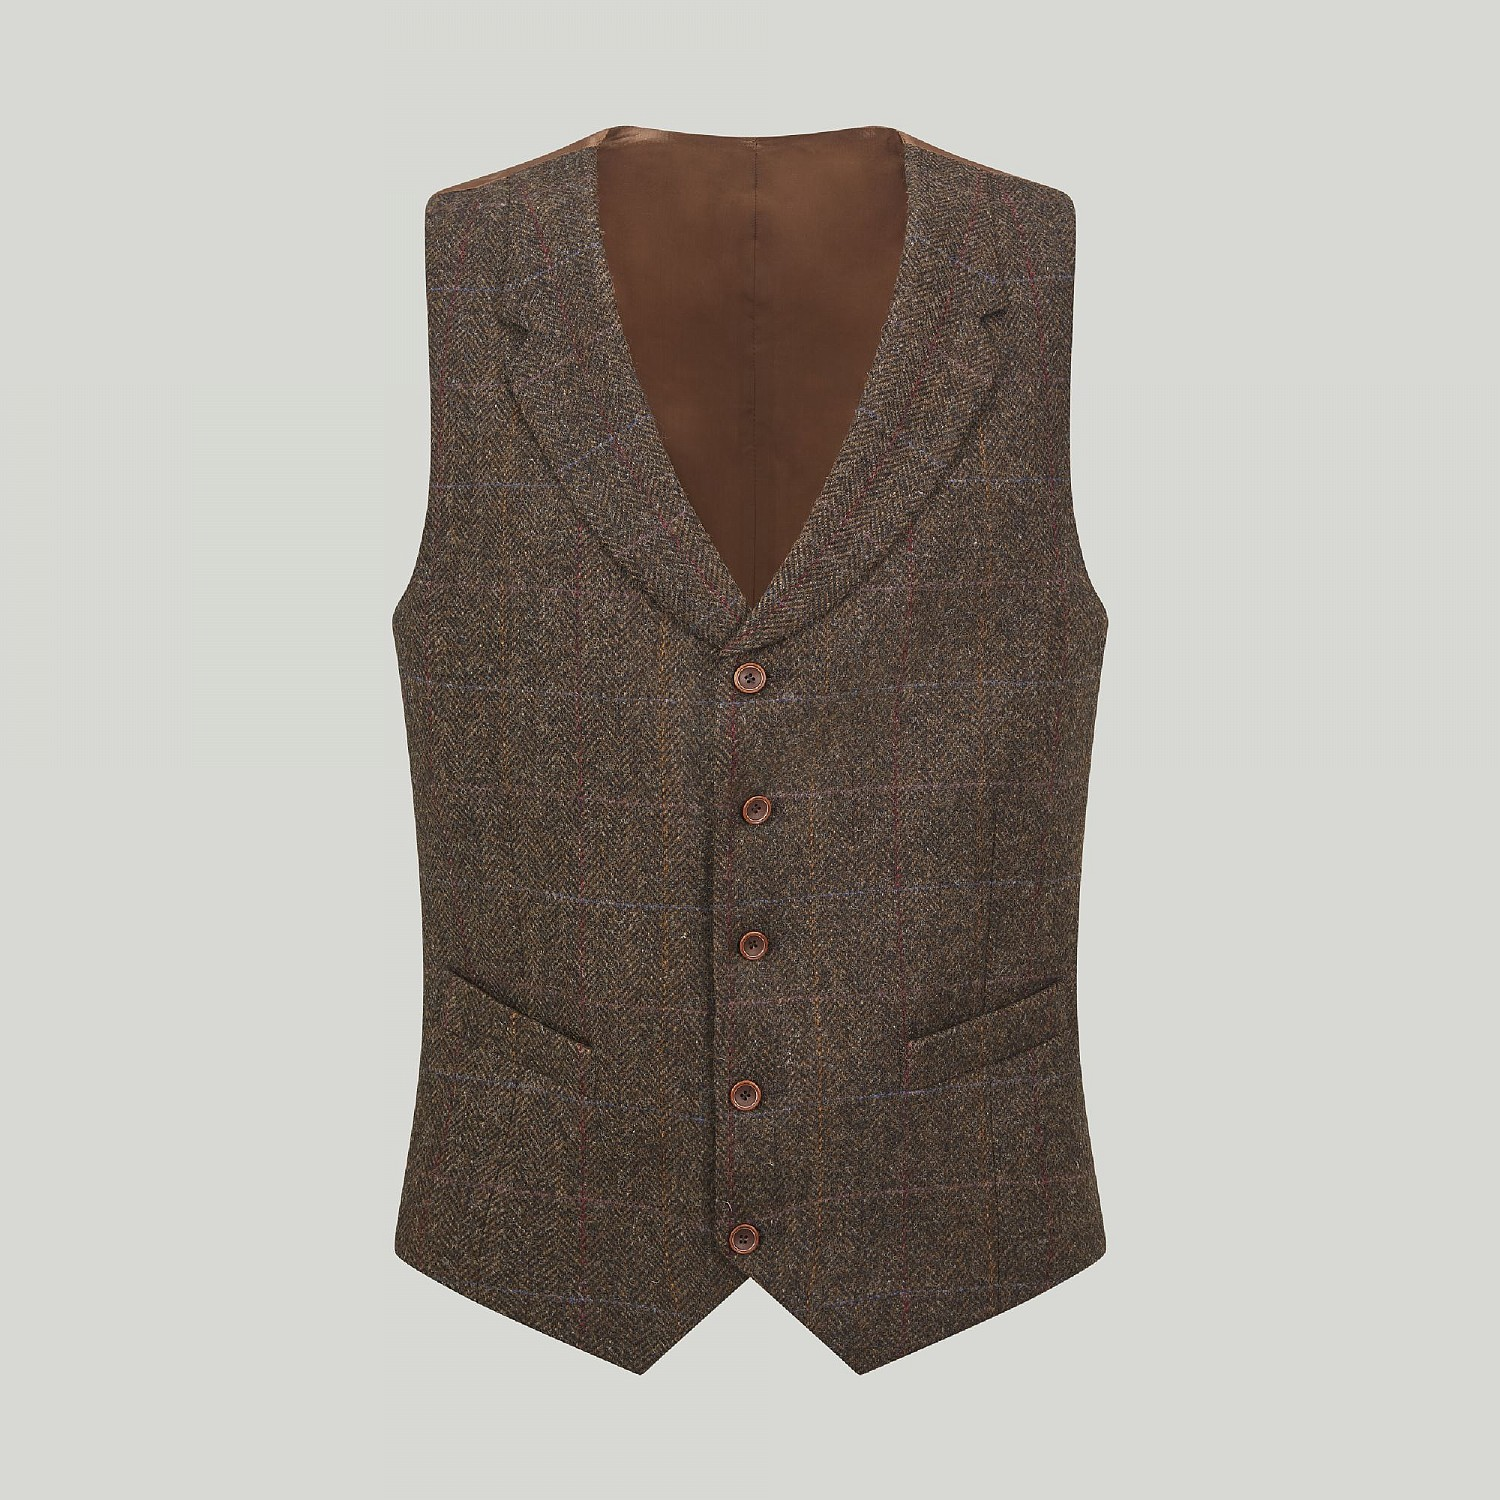 Brown and Gold Check Waistcoat